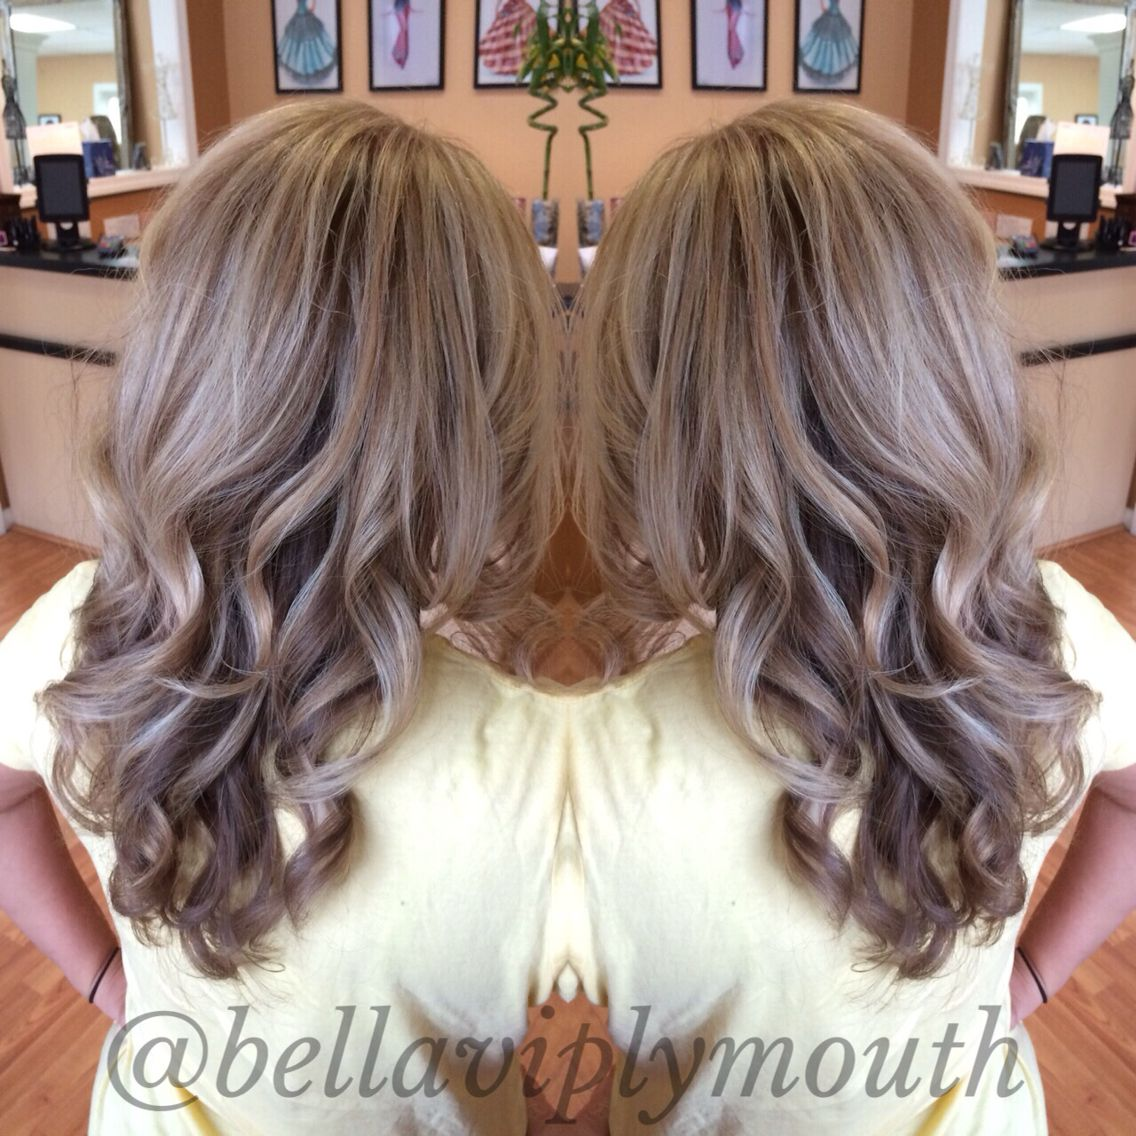 Ash Blonde Highlights With Chocolate Brown Lowlights On Long Wavy